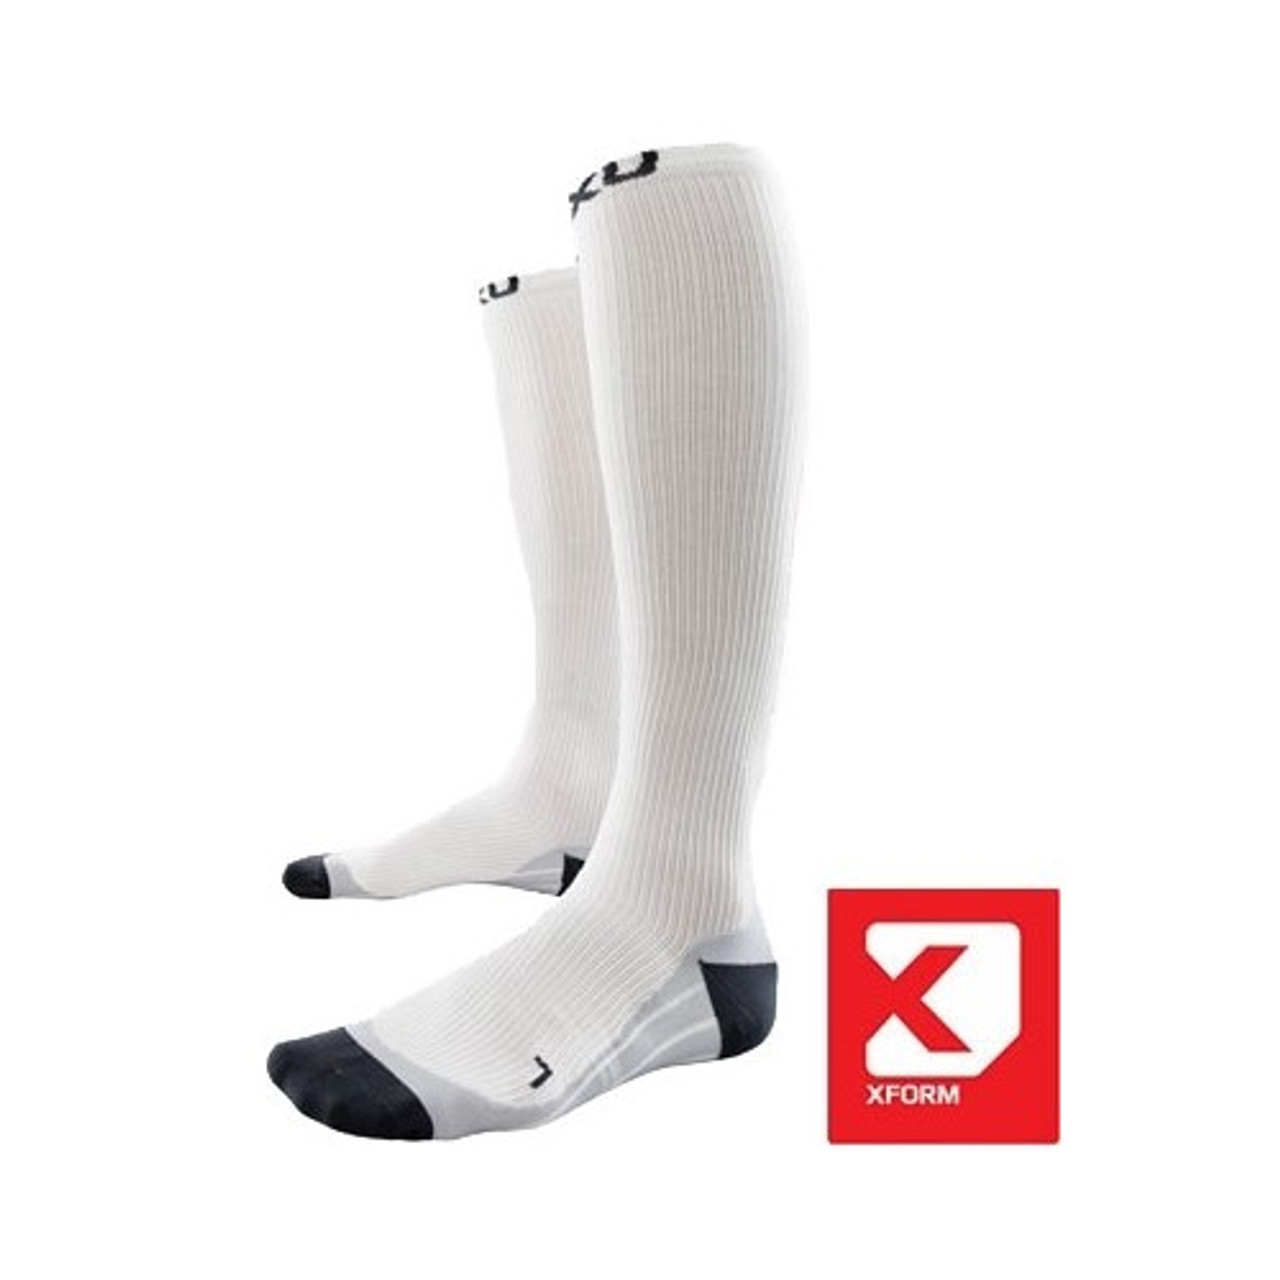 b65c4f943e050 2XU Women's Xform Compression Race Sock